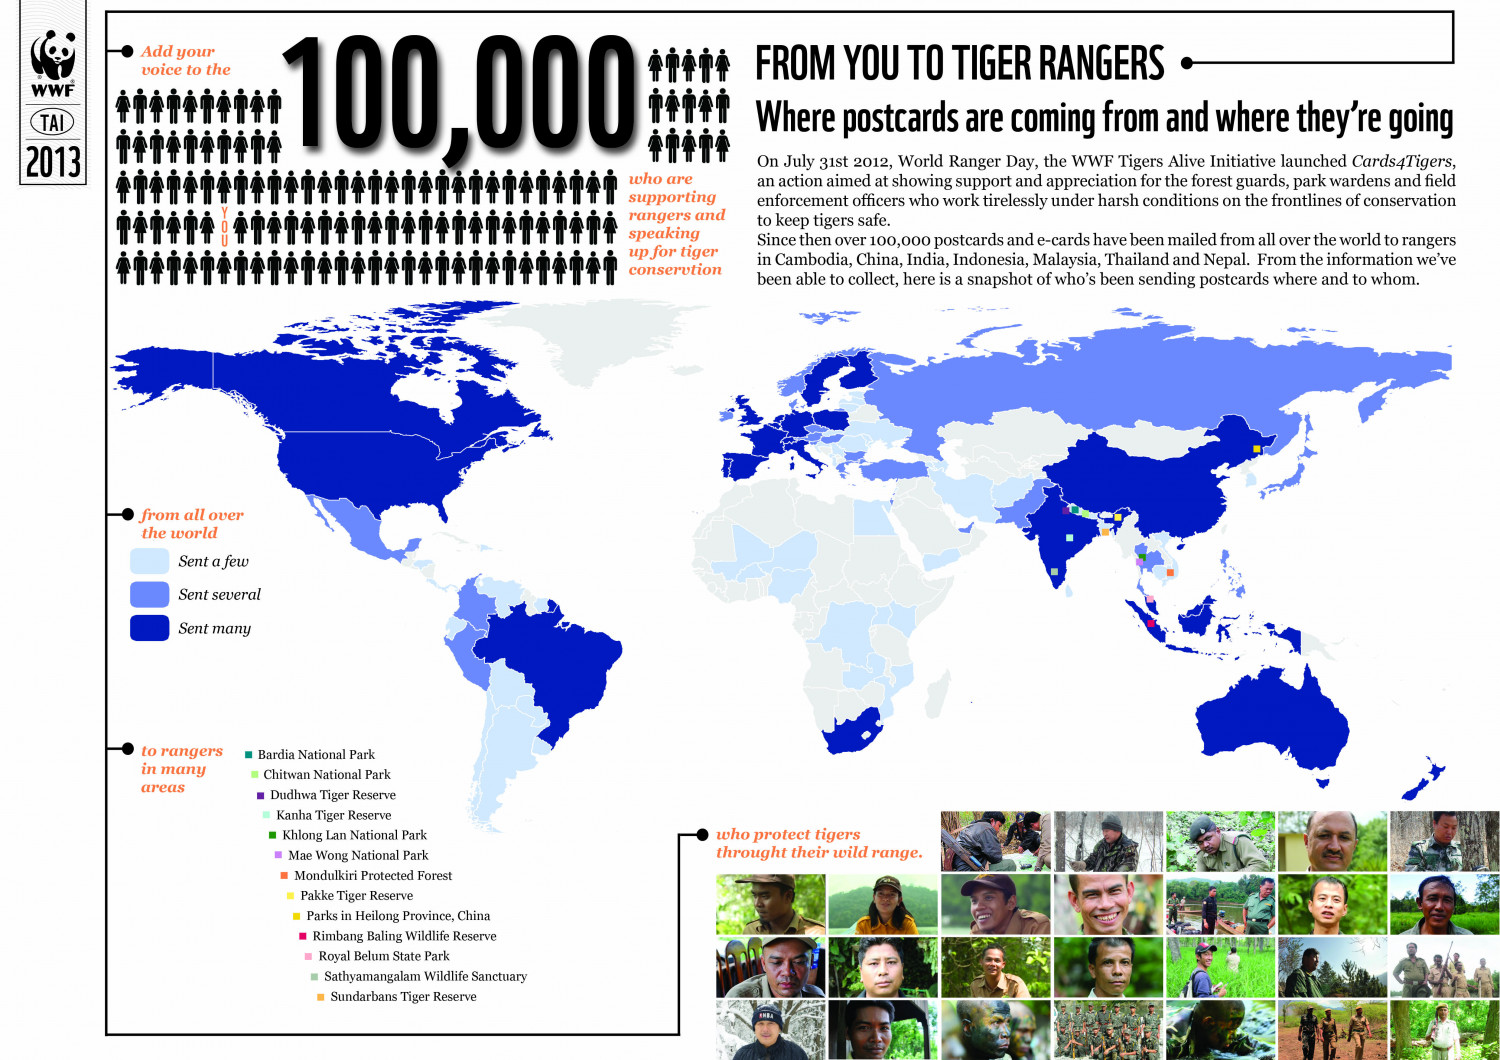 Postcards to Tiger Rangers Infographic